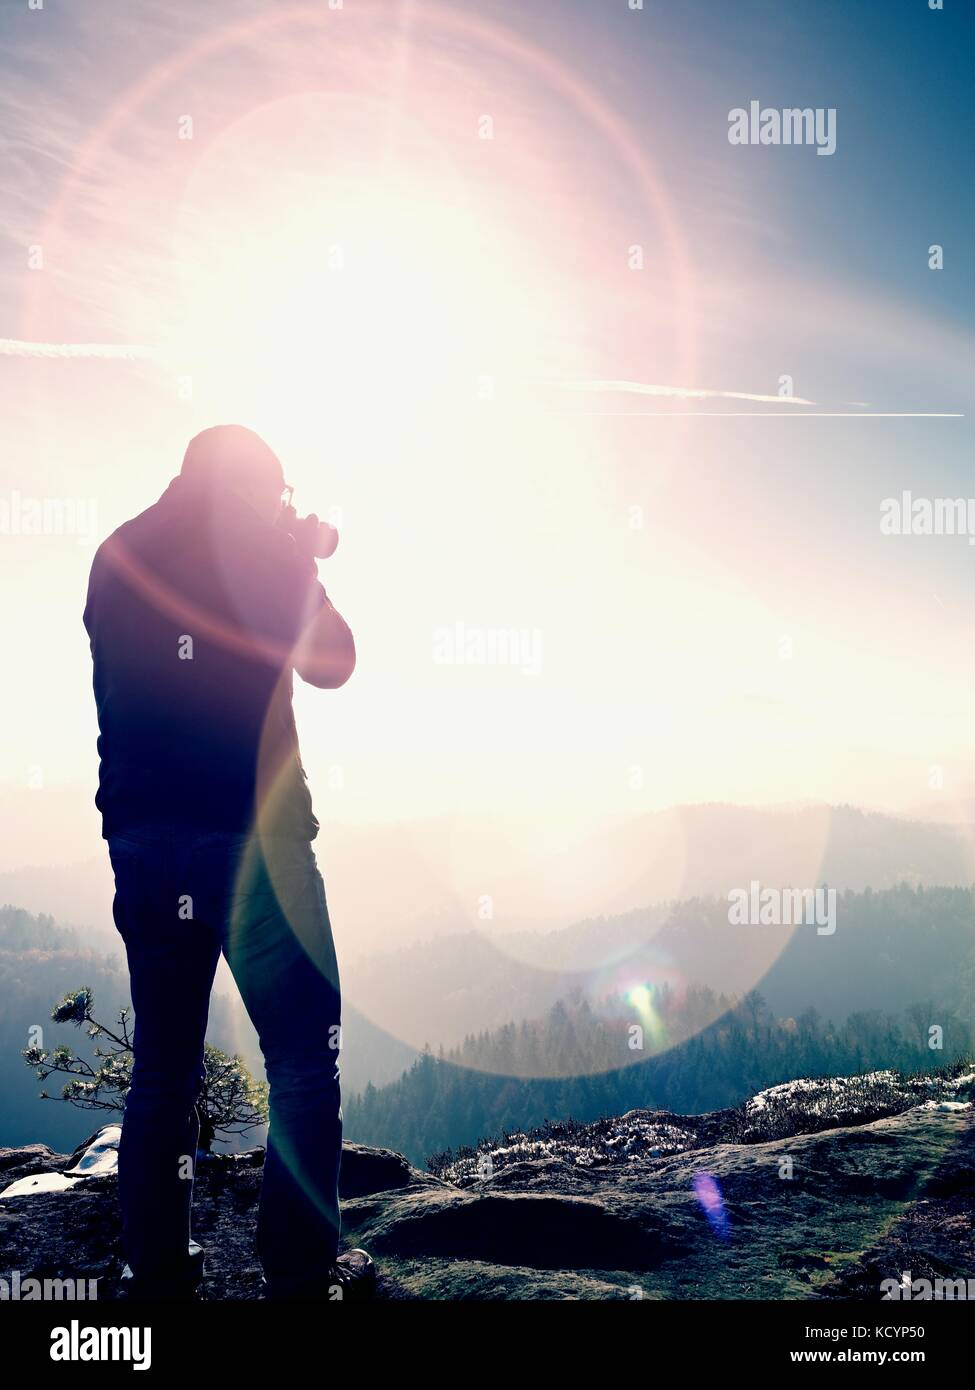 Tall  man is taking photo by mirror camera on neck. Snowy rocky peak of mountain. Professional photographer takes - Stock Image